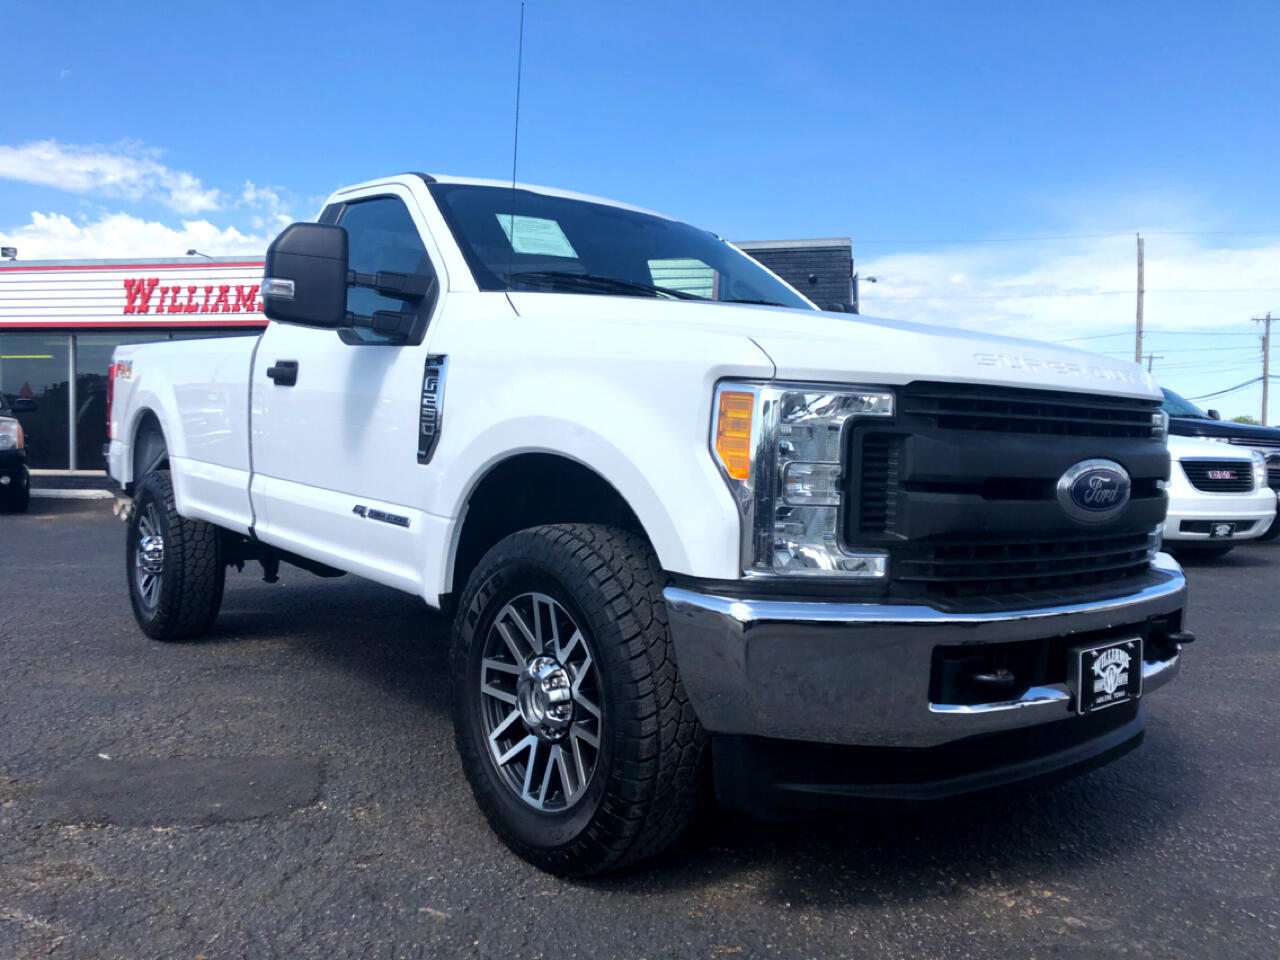 2017 Ford F-250 Regular Cab XL 4X4